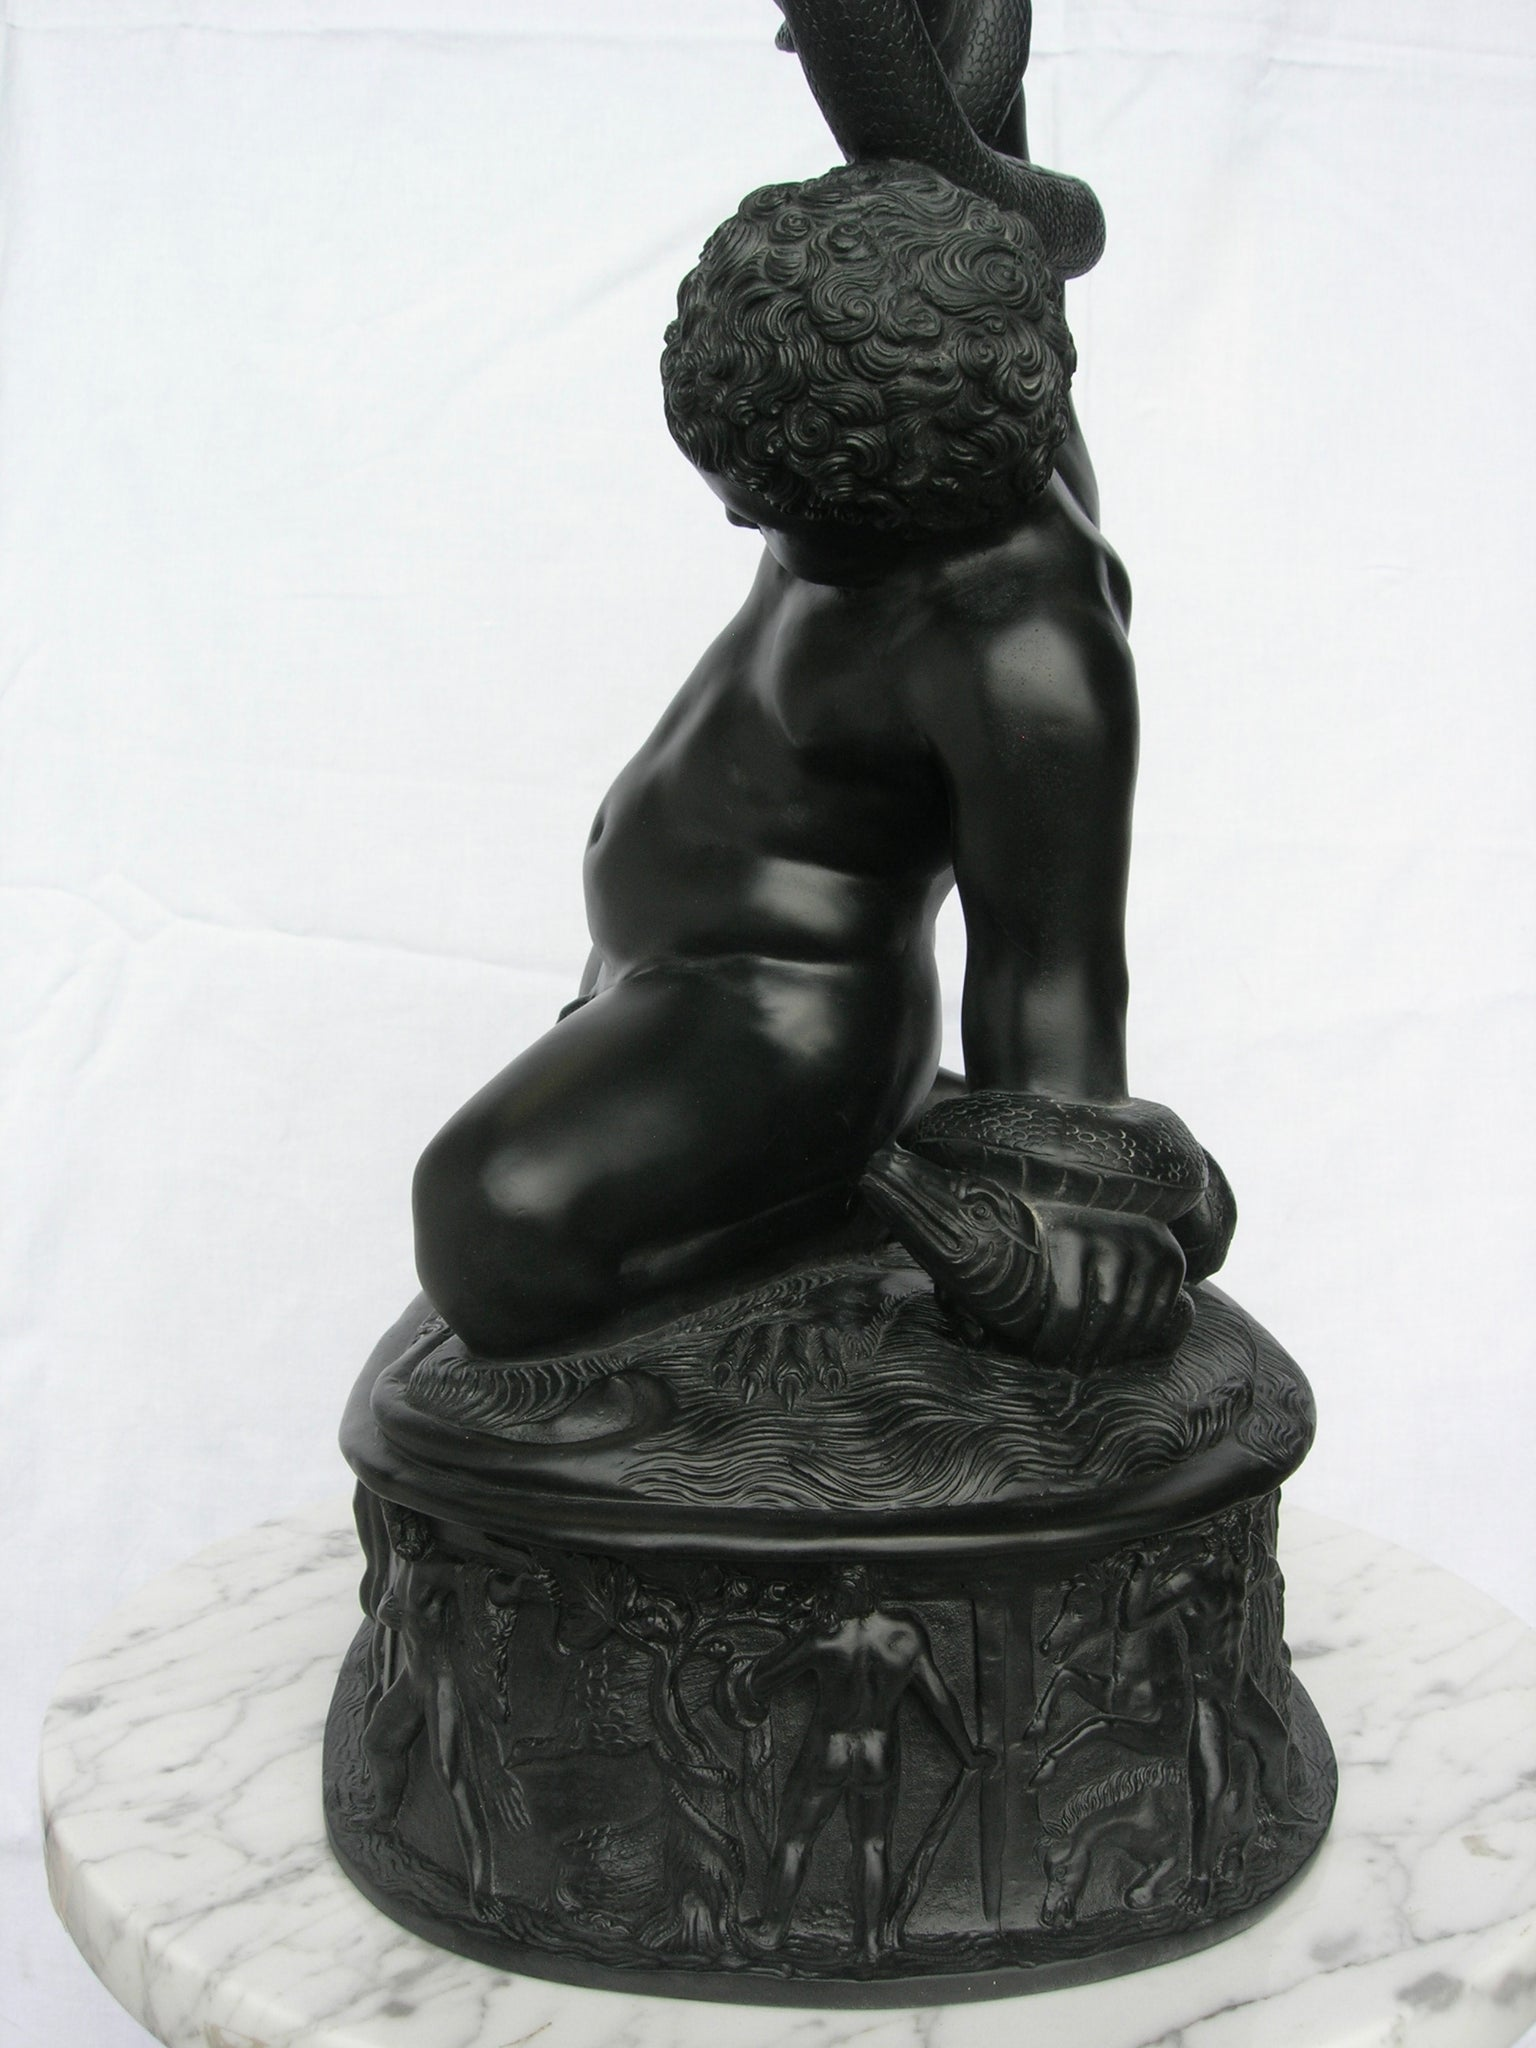 The Young Hercules, Basalt Black